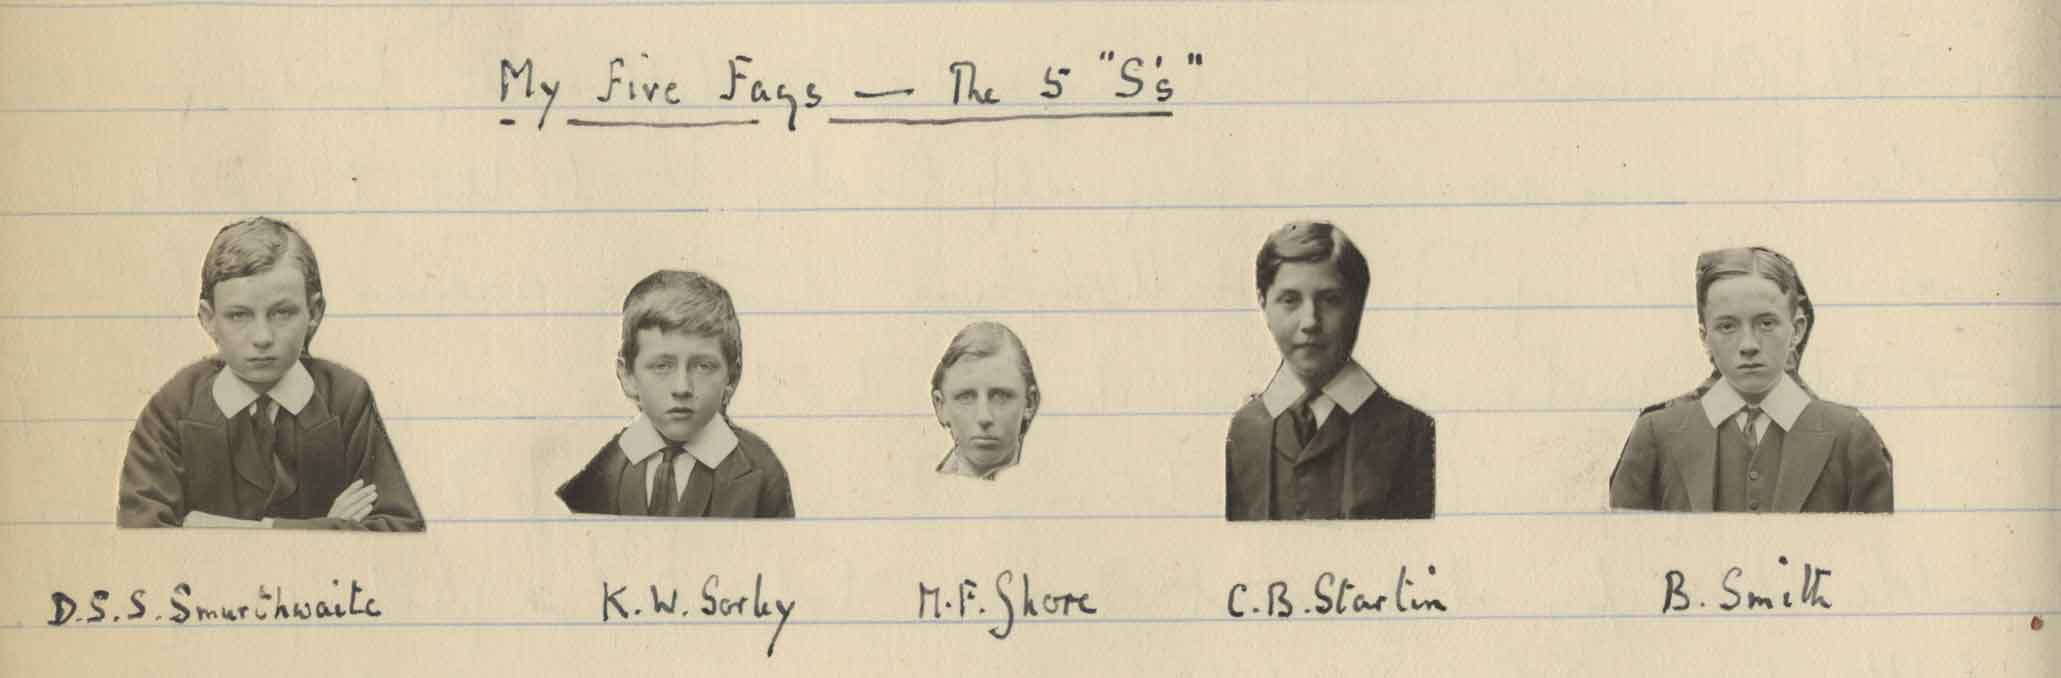 Photographs of five boys